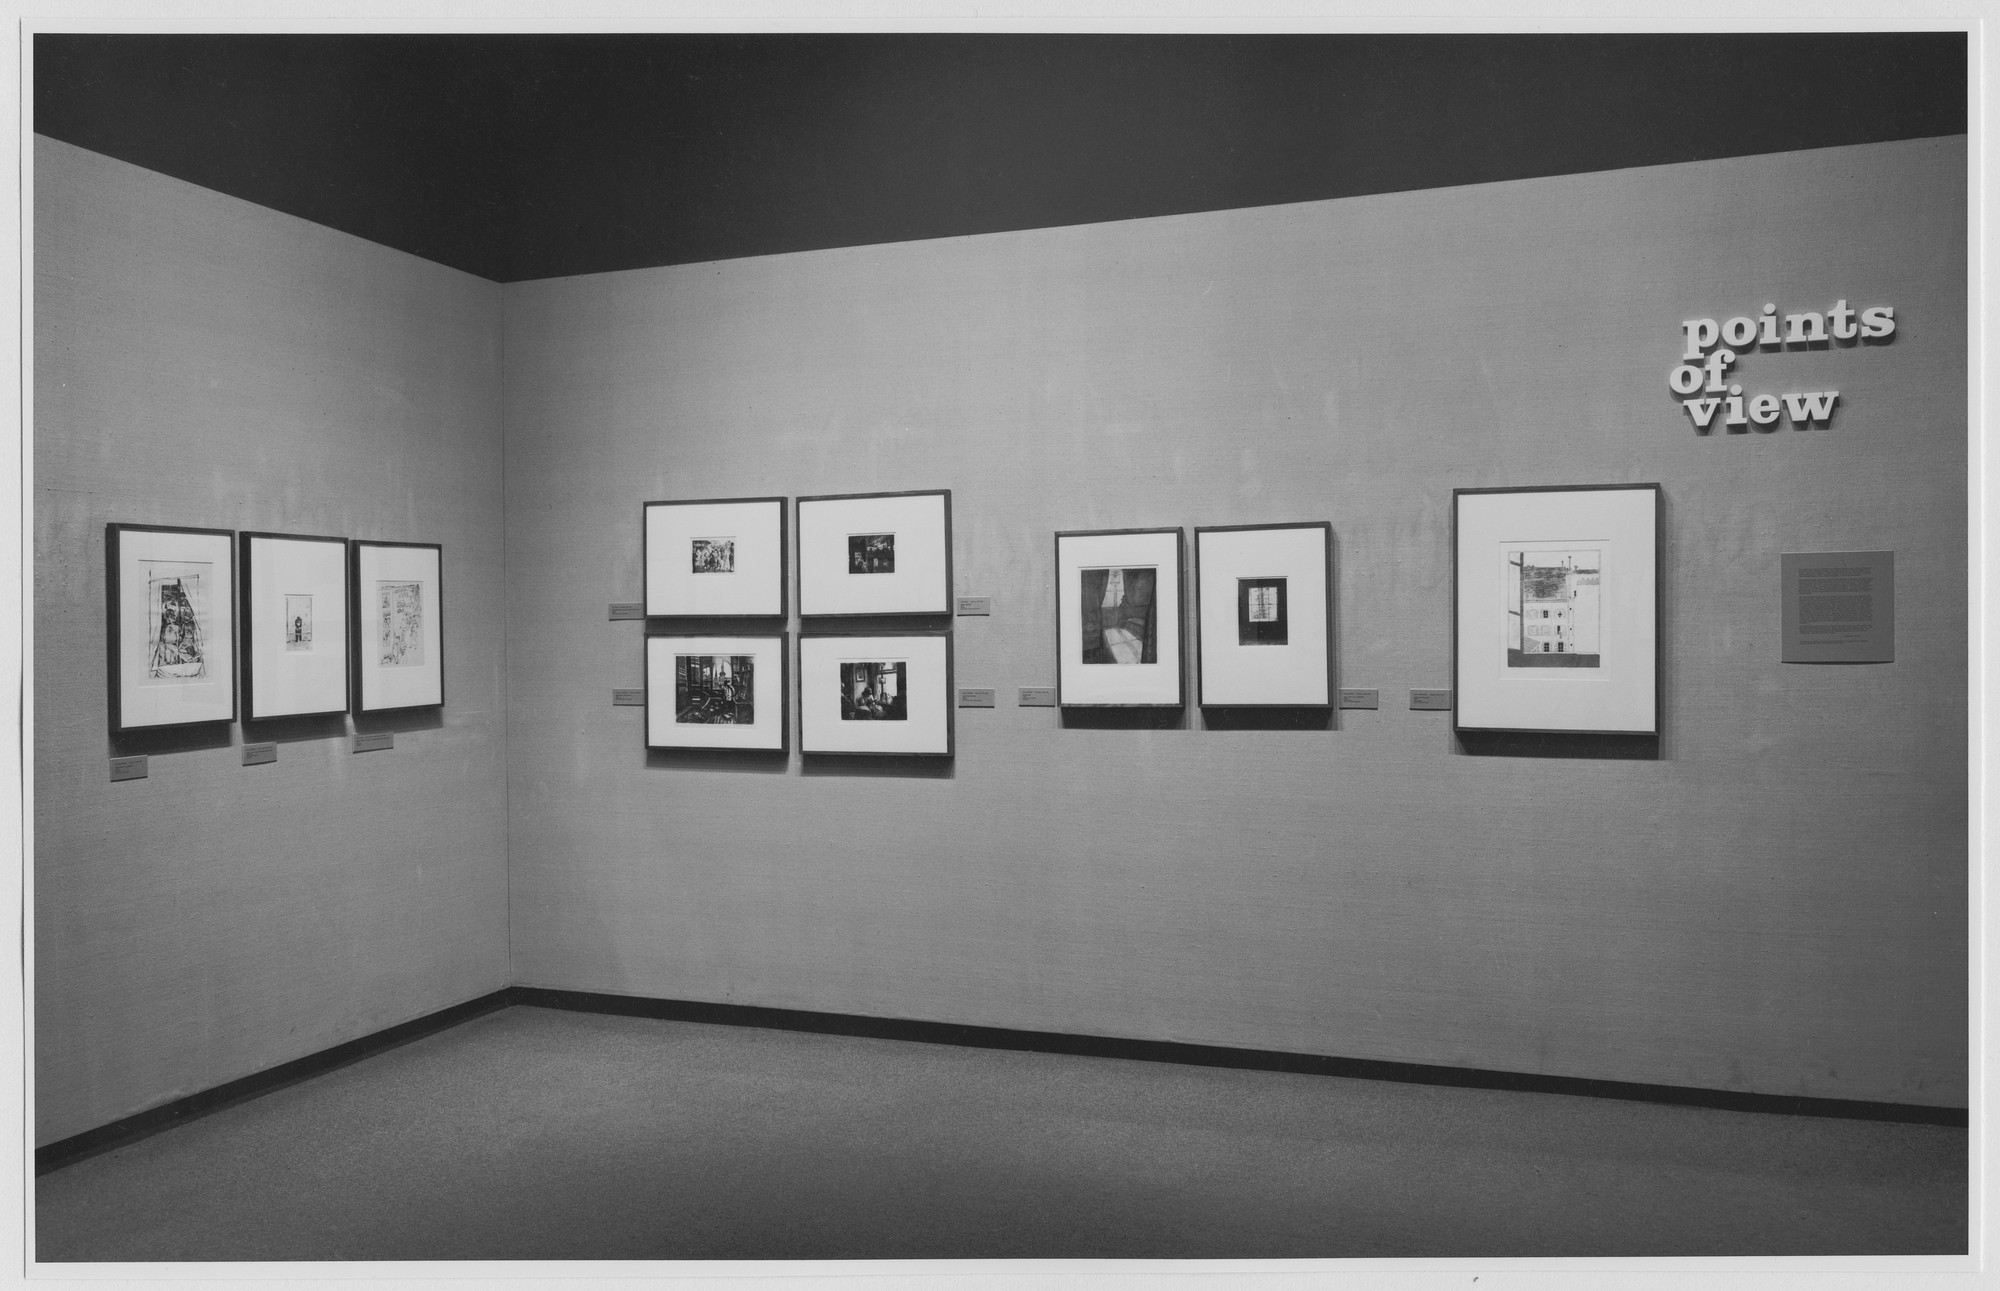 "Installation view of the exhibition, ""Points of View."" March 7, 1975–June 8, 1975. Photographic Archive. The Museum of Modern Art Archives, New York. IN1091a.1. Photograph by Katherine Keller."